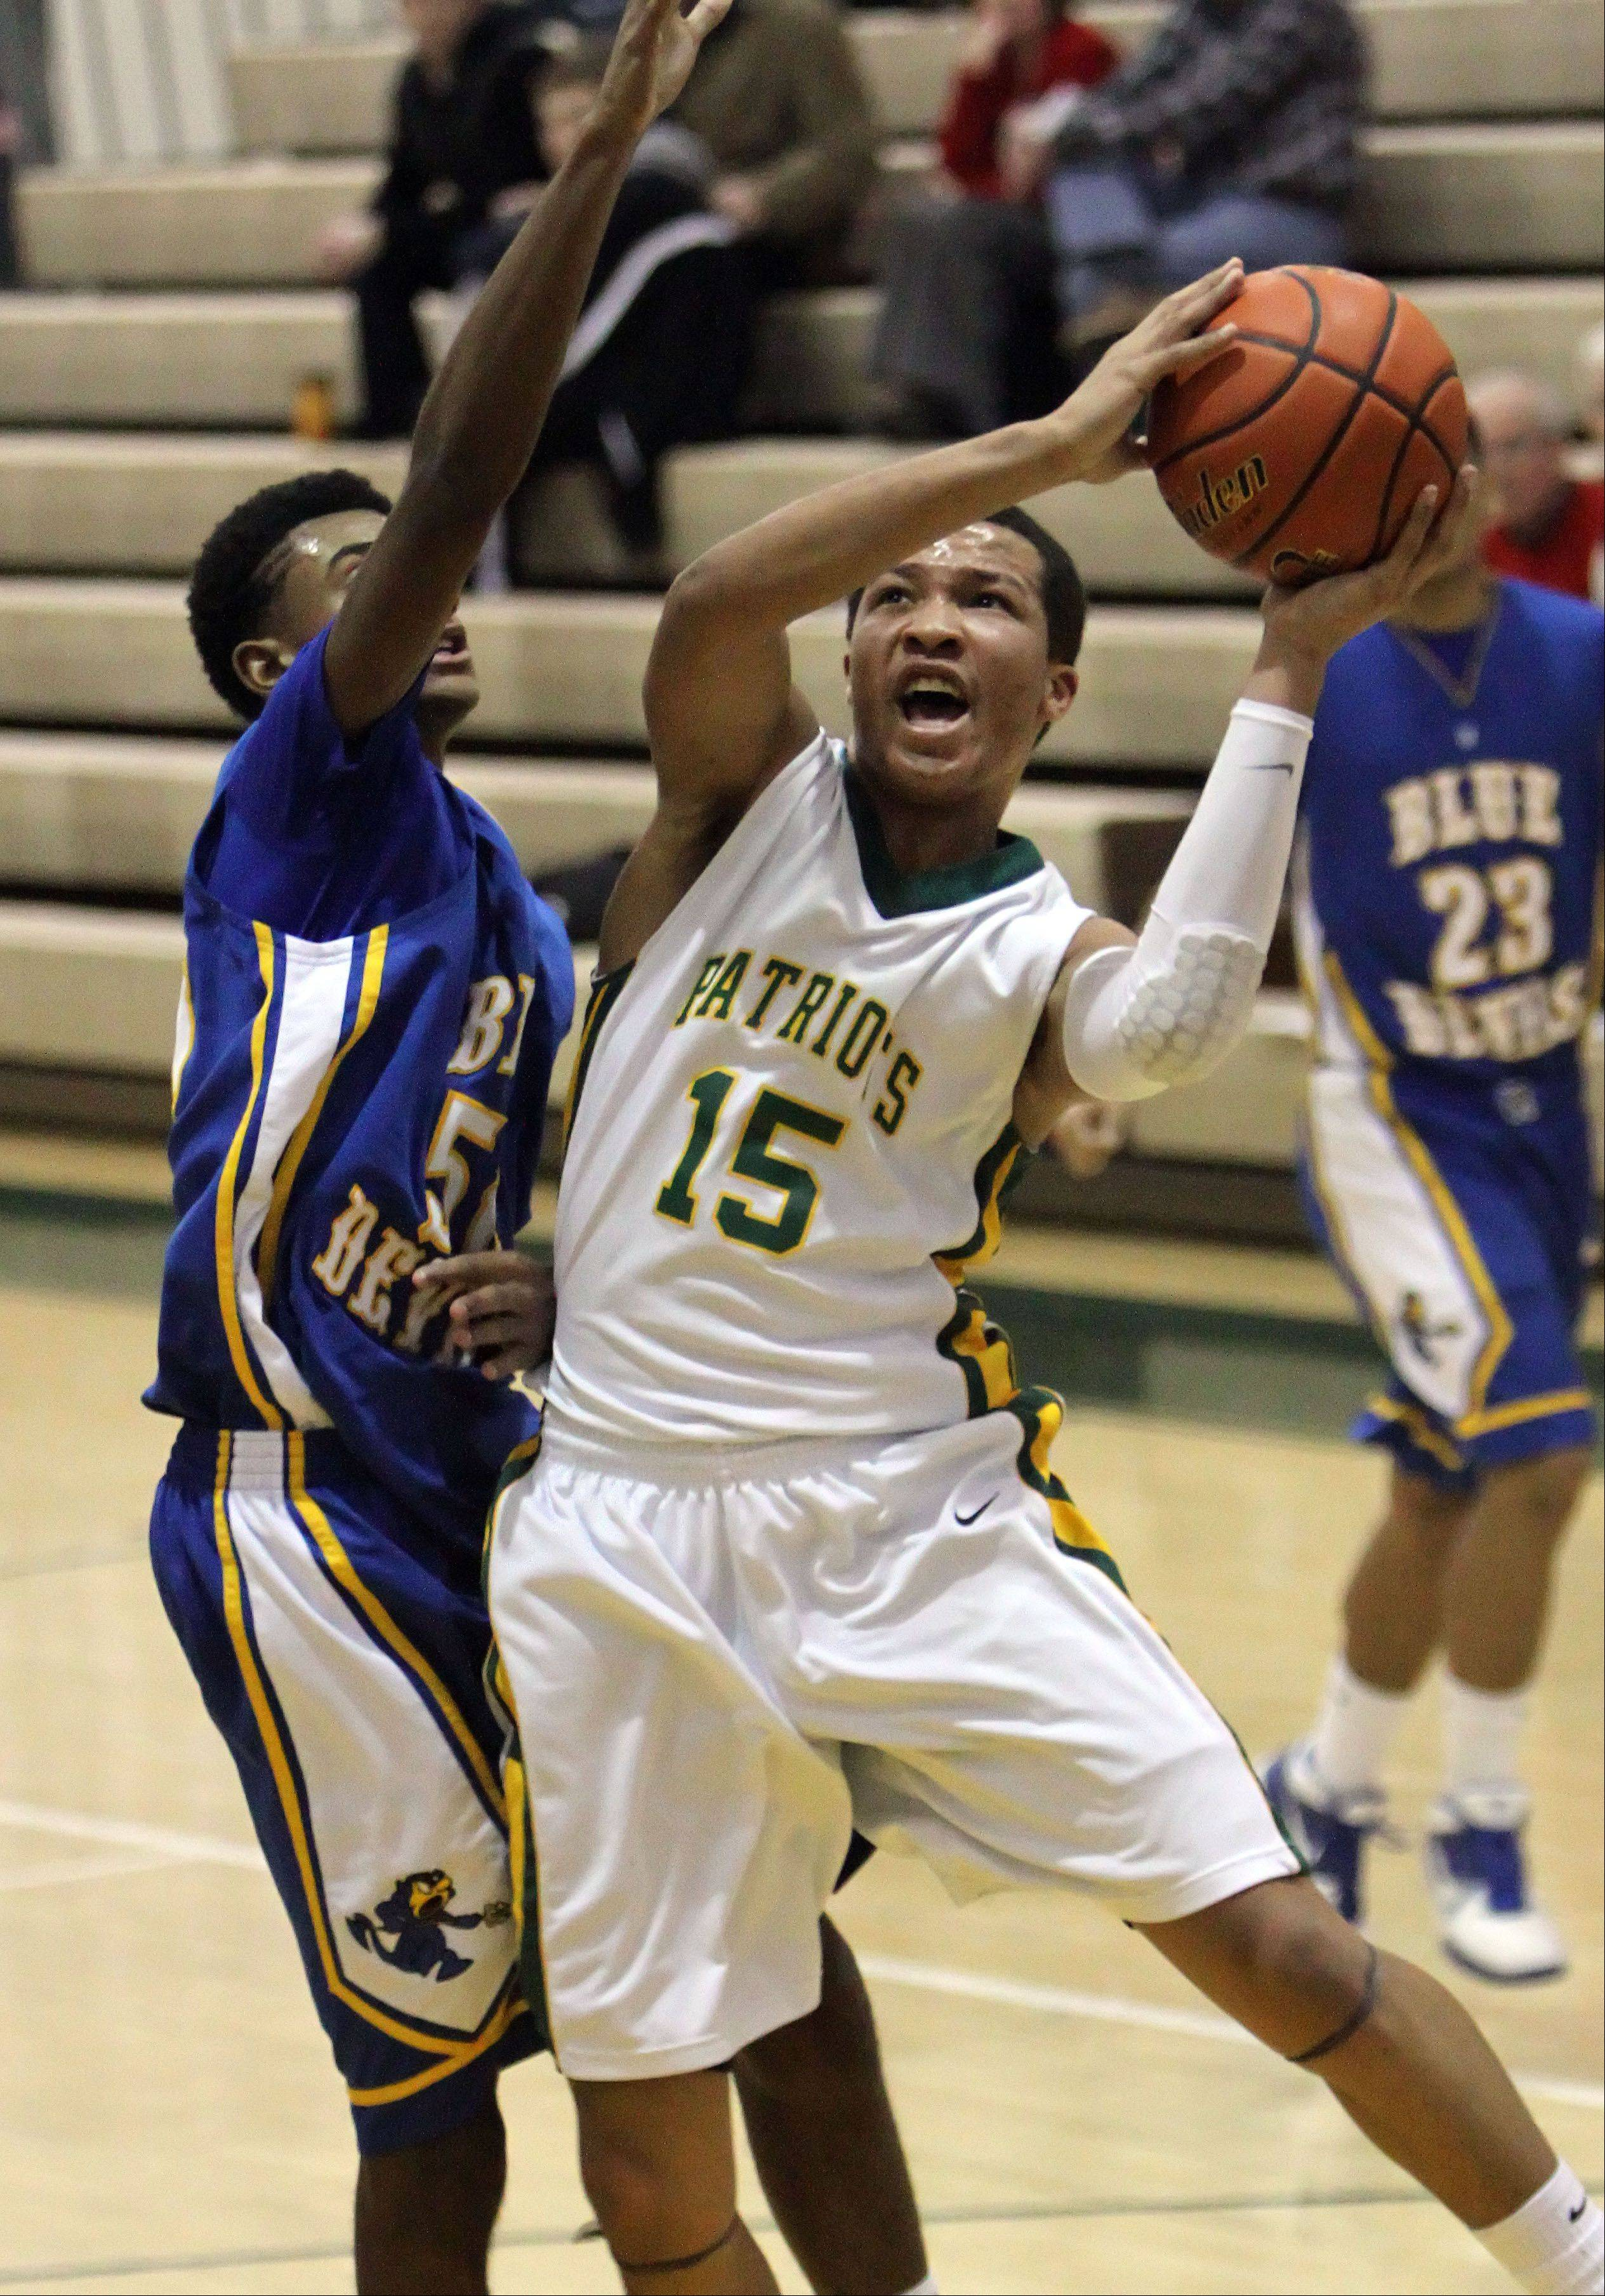 Stevenson's Jalen Brunson, right, drives on Warren's Adrian Deere on Tuesday night at Stevenson High School.